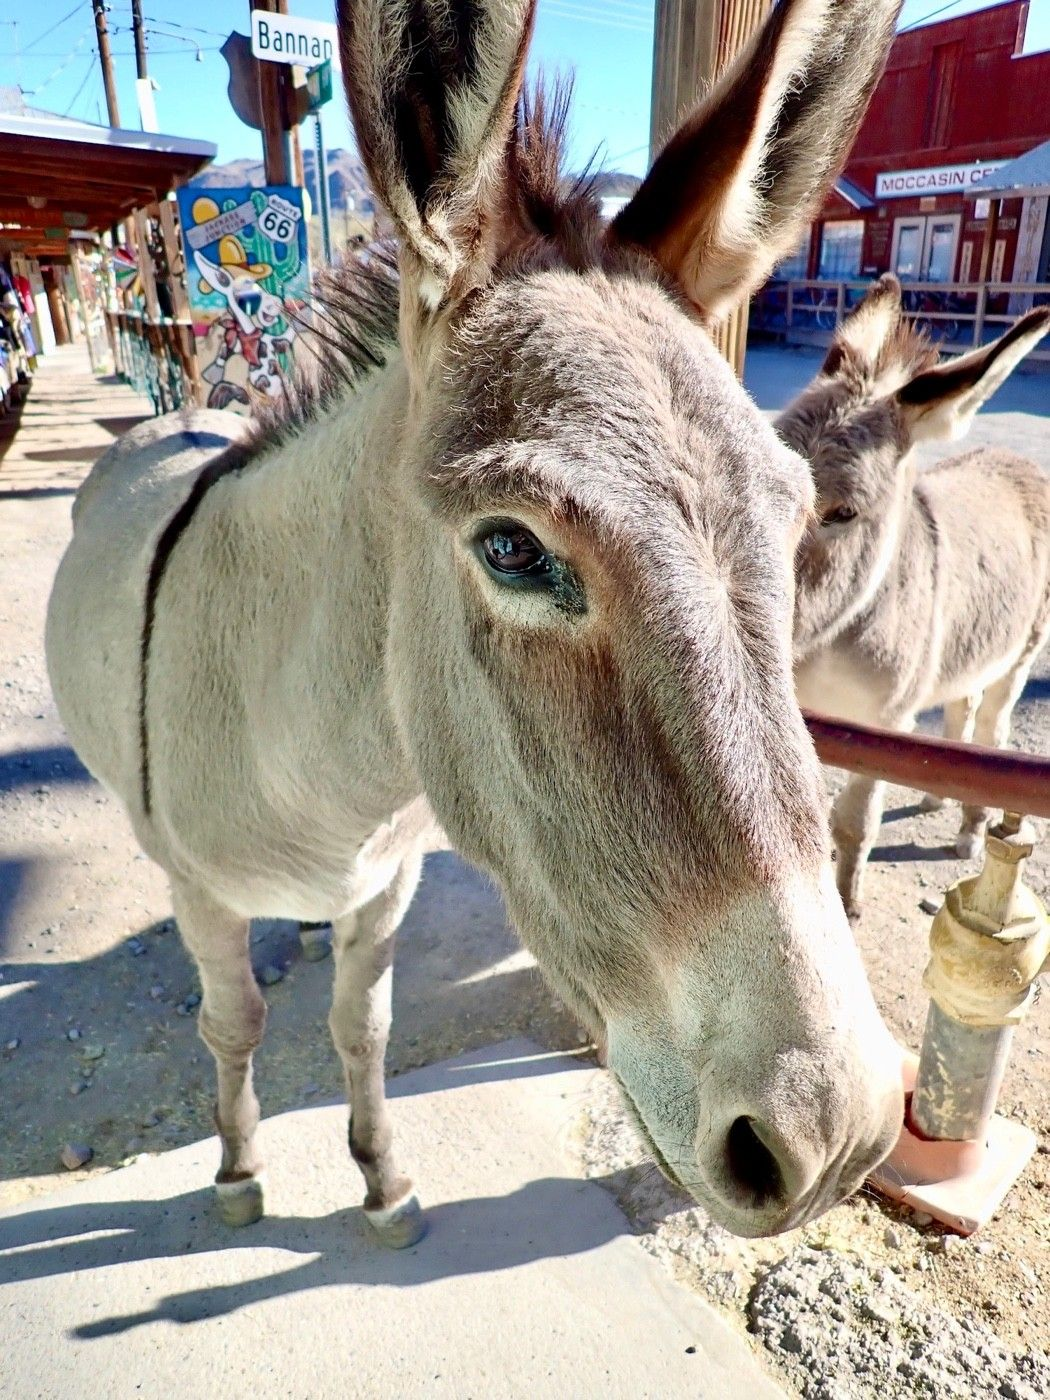 Burros, left over from gold mining days, wander on Rt. 66 in Oatman.